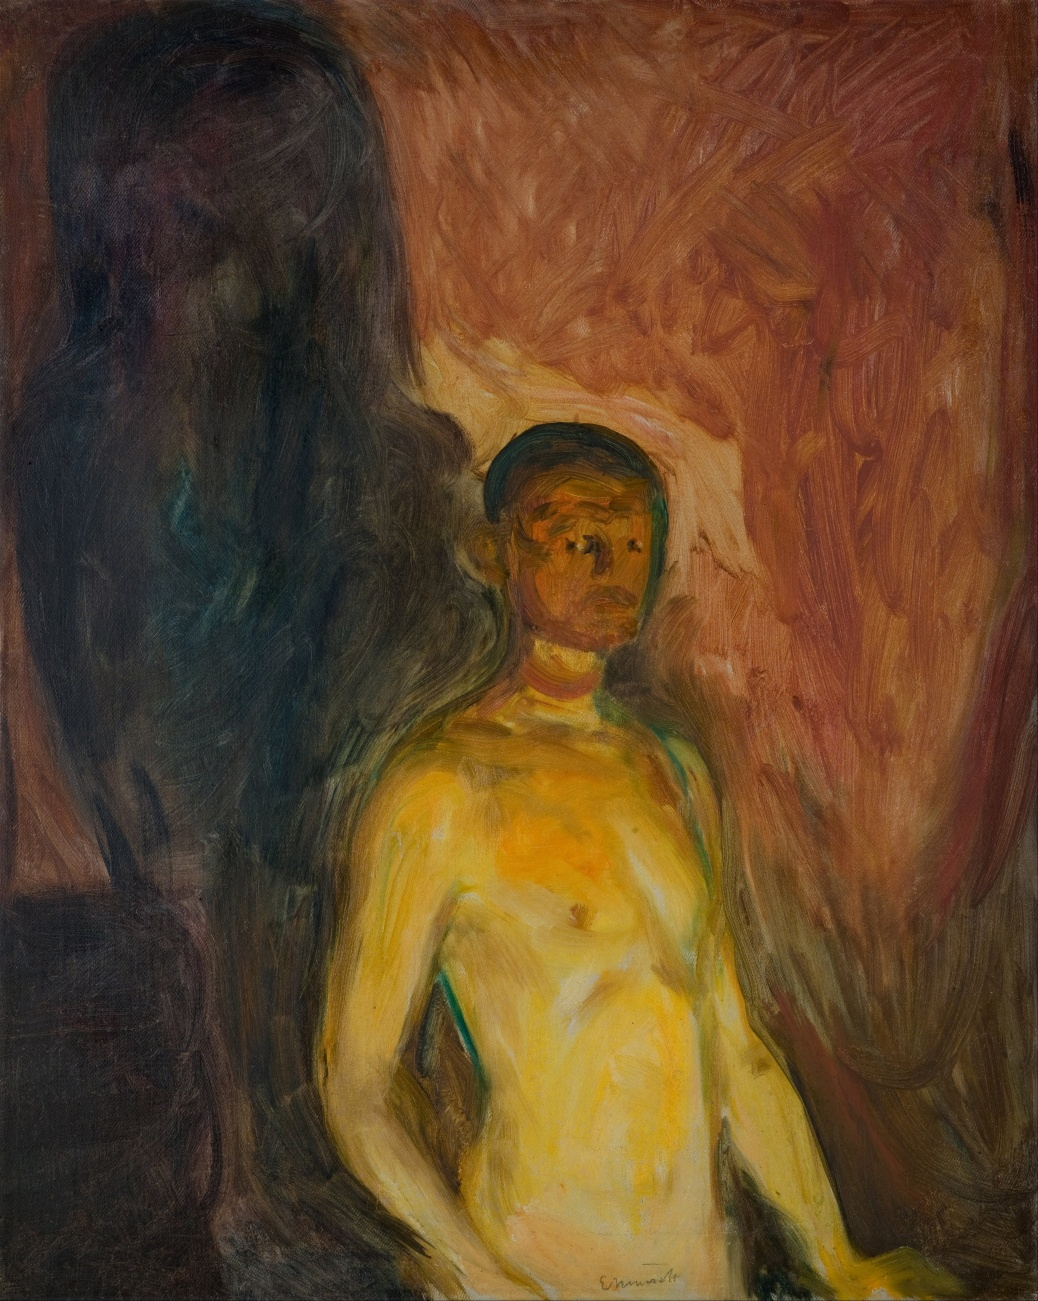 Edvard_Munch_-_Self-Portrait_in_Hell_-_Google_Art_Project